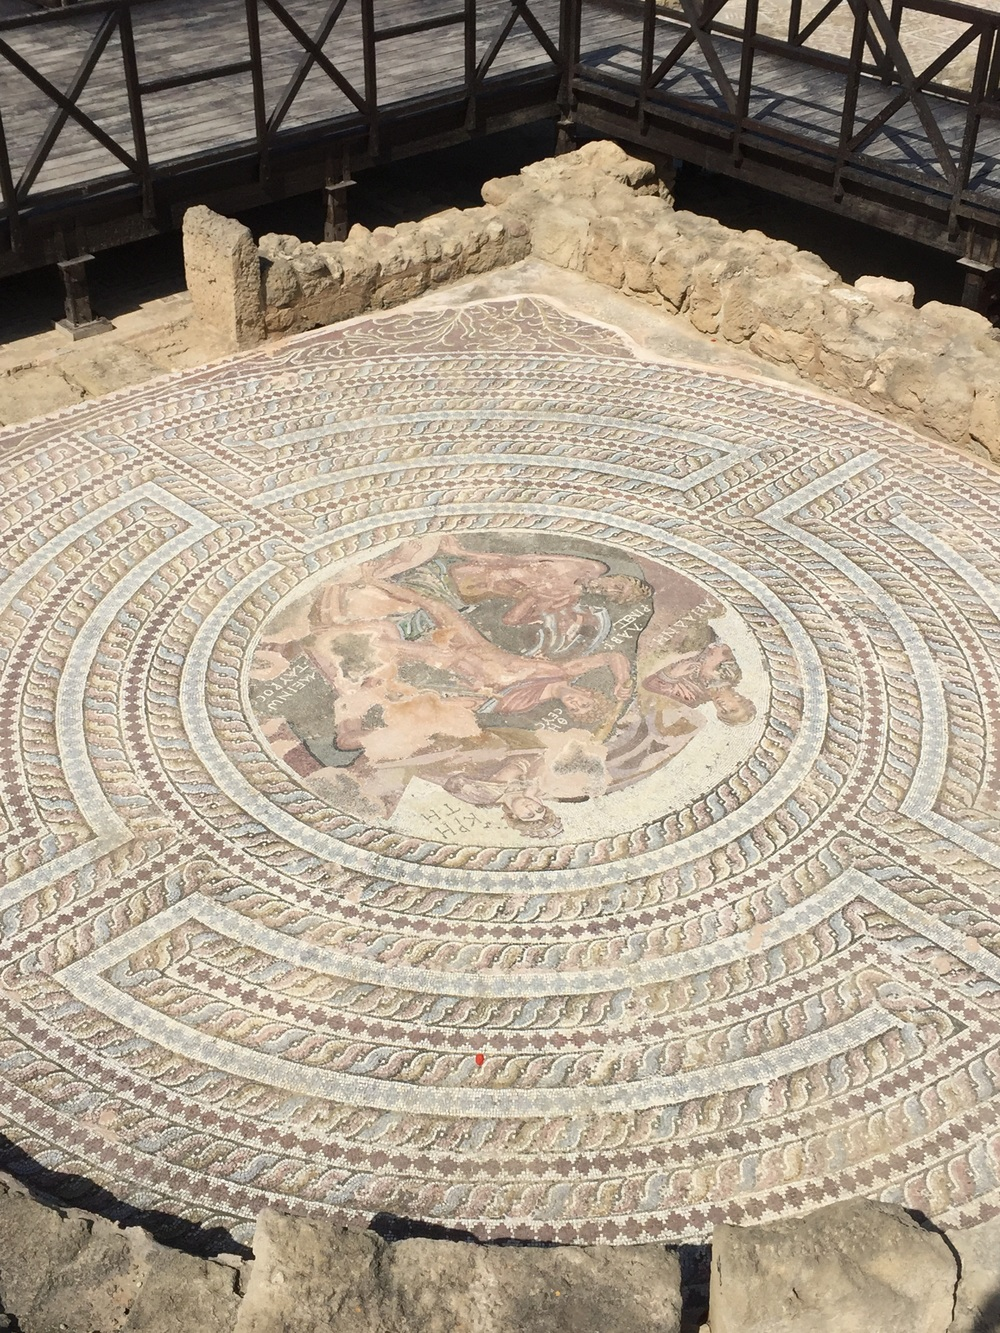 2000 year-old mosaic labyrinth in the House of Theseus in the ruins of Kato Pathos